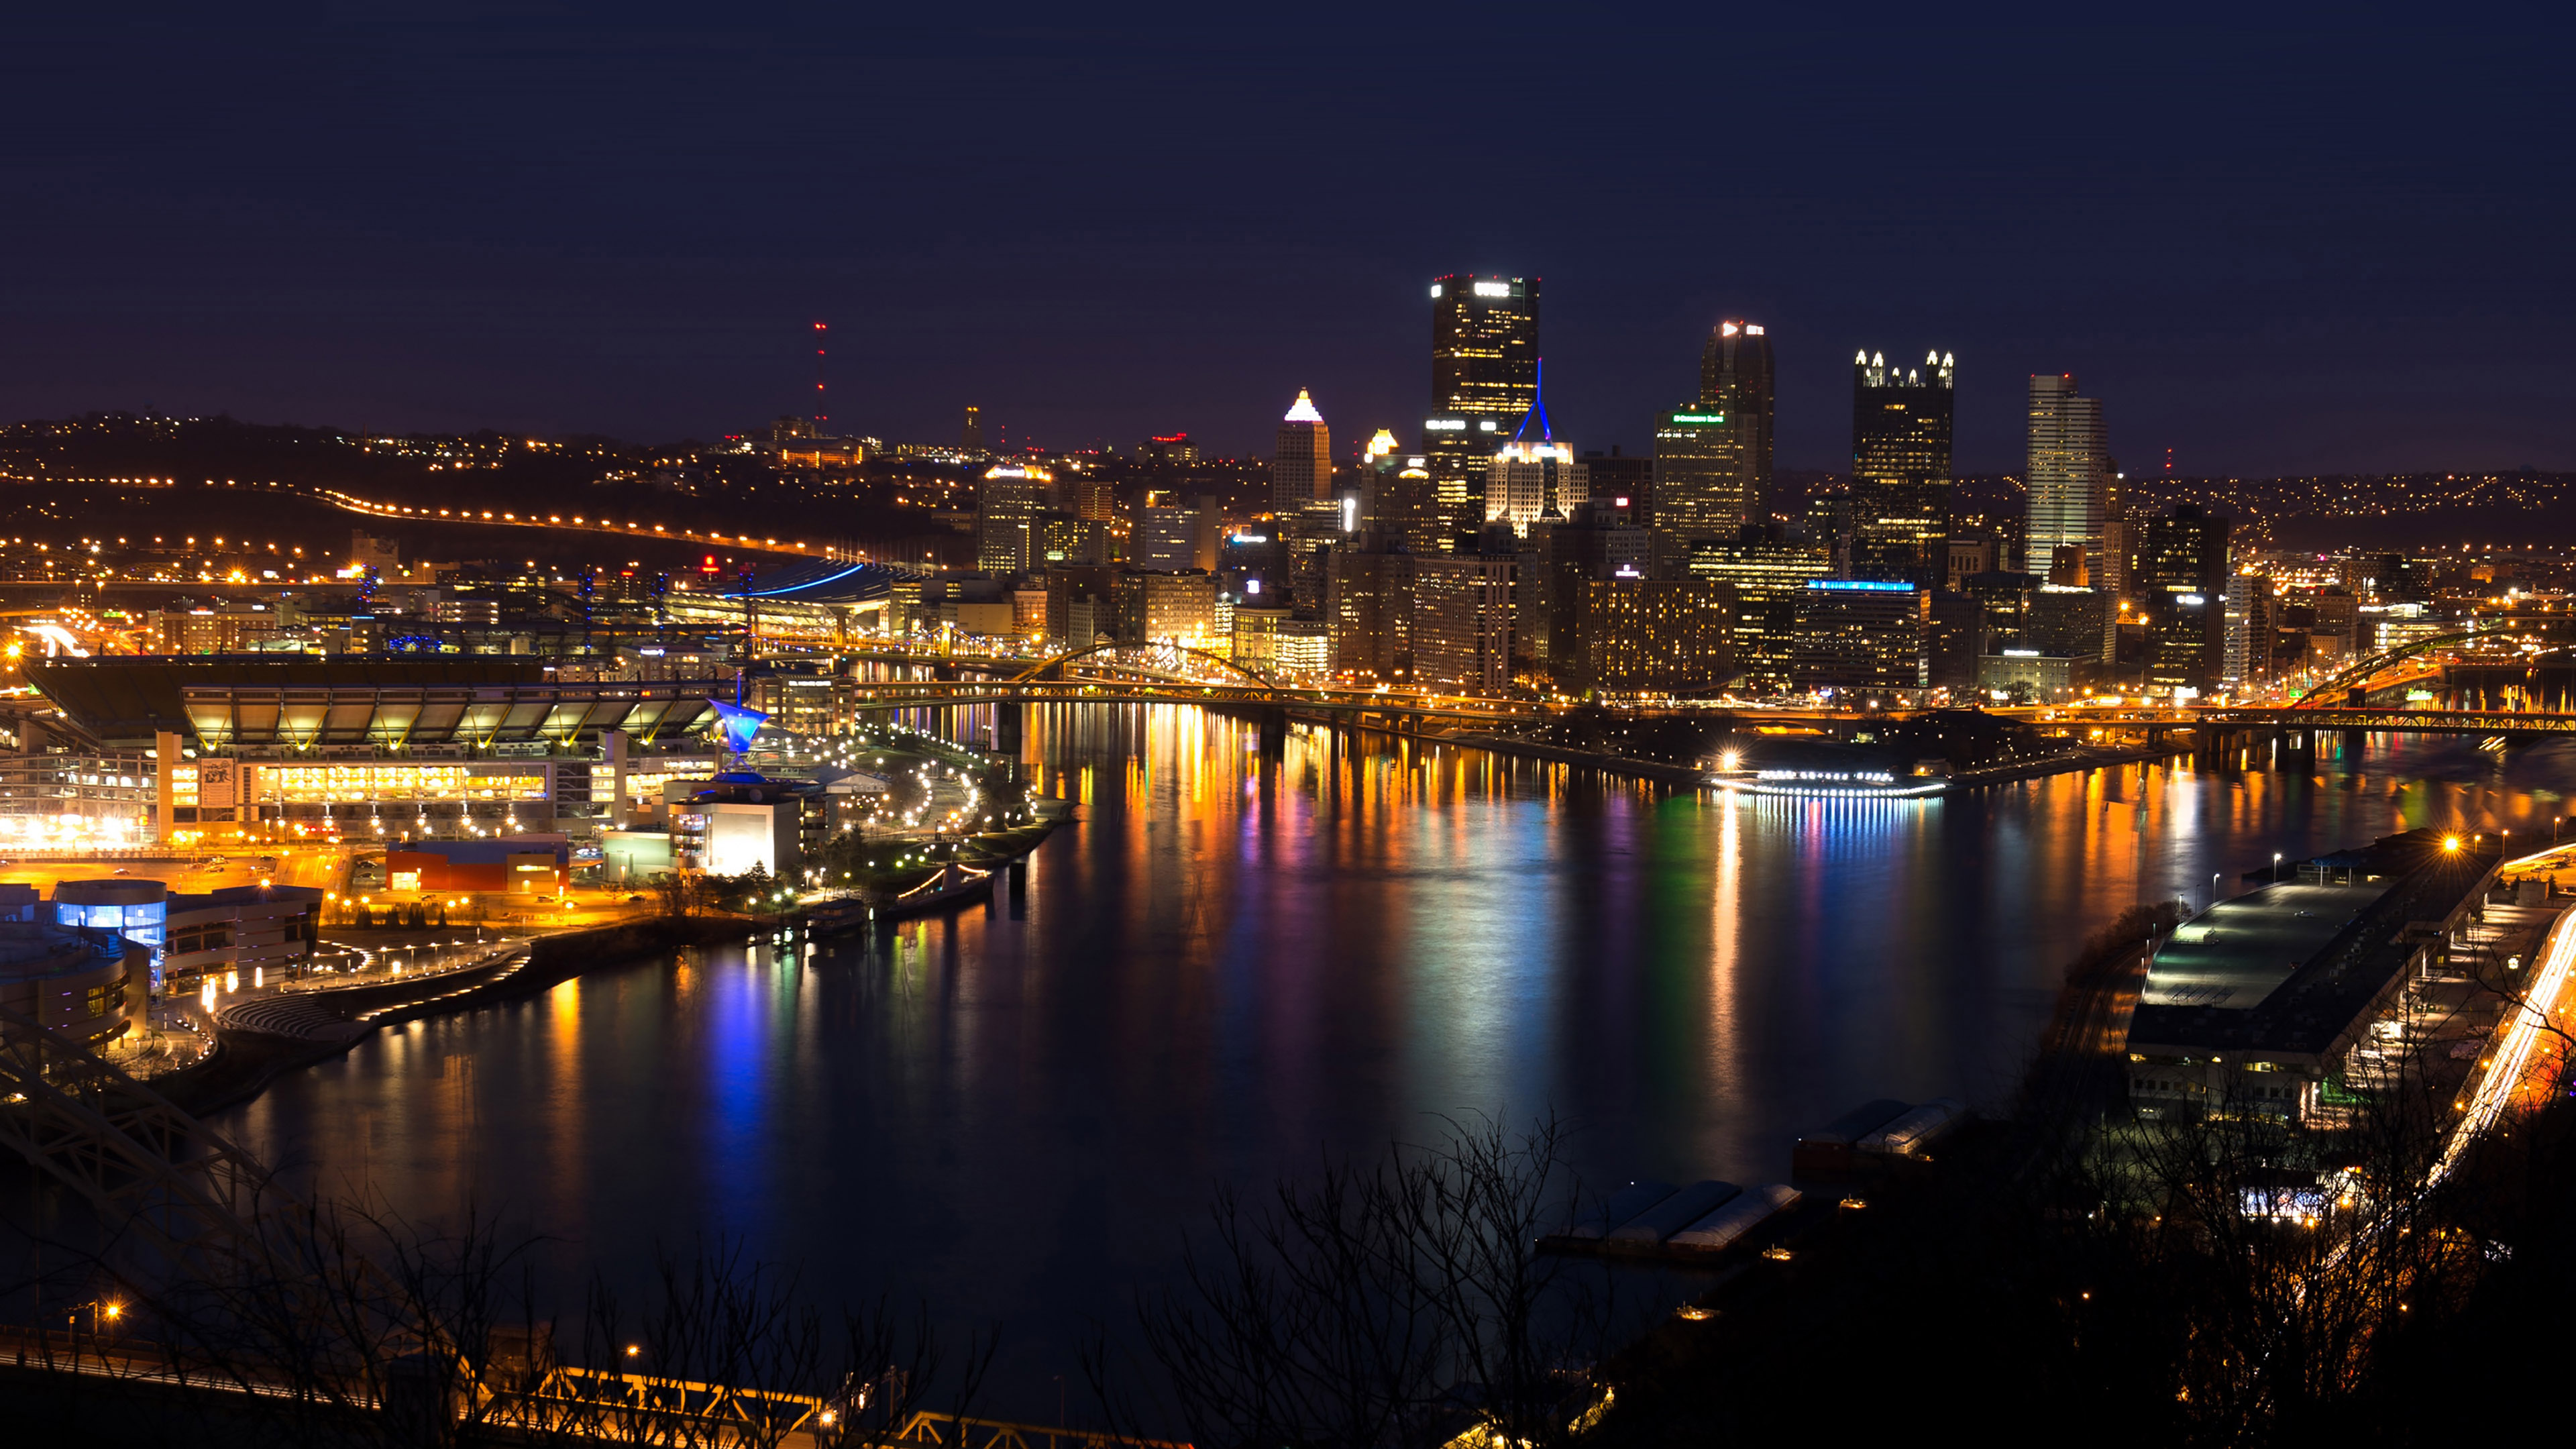 Fall Flower Ipad Wallpaper Mh19 Pittsburgh Skyline Night Cityview Nature Papers Co